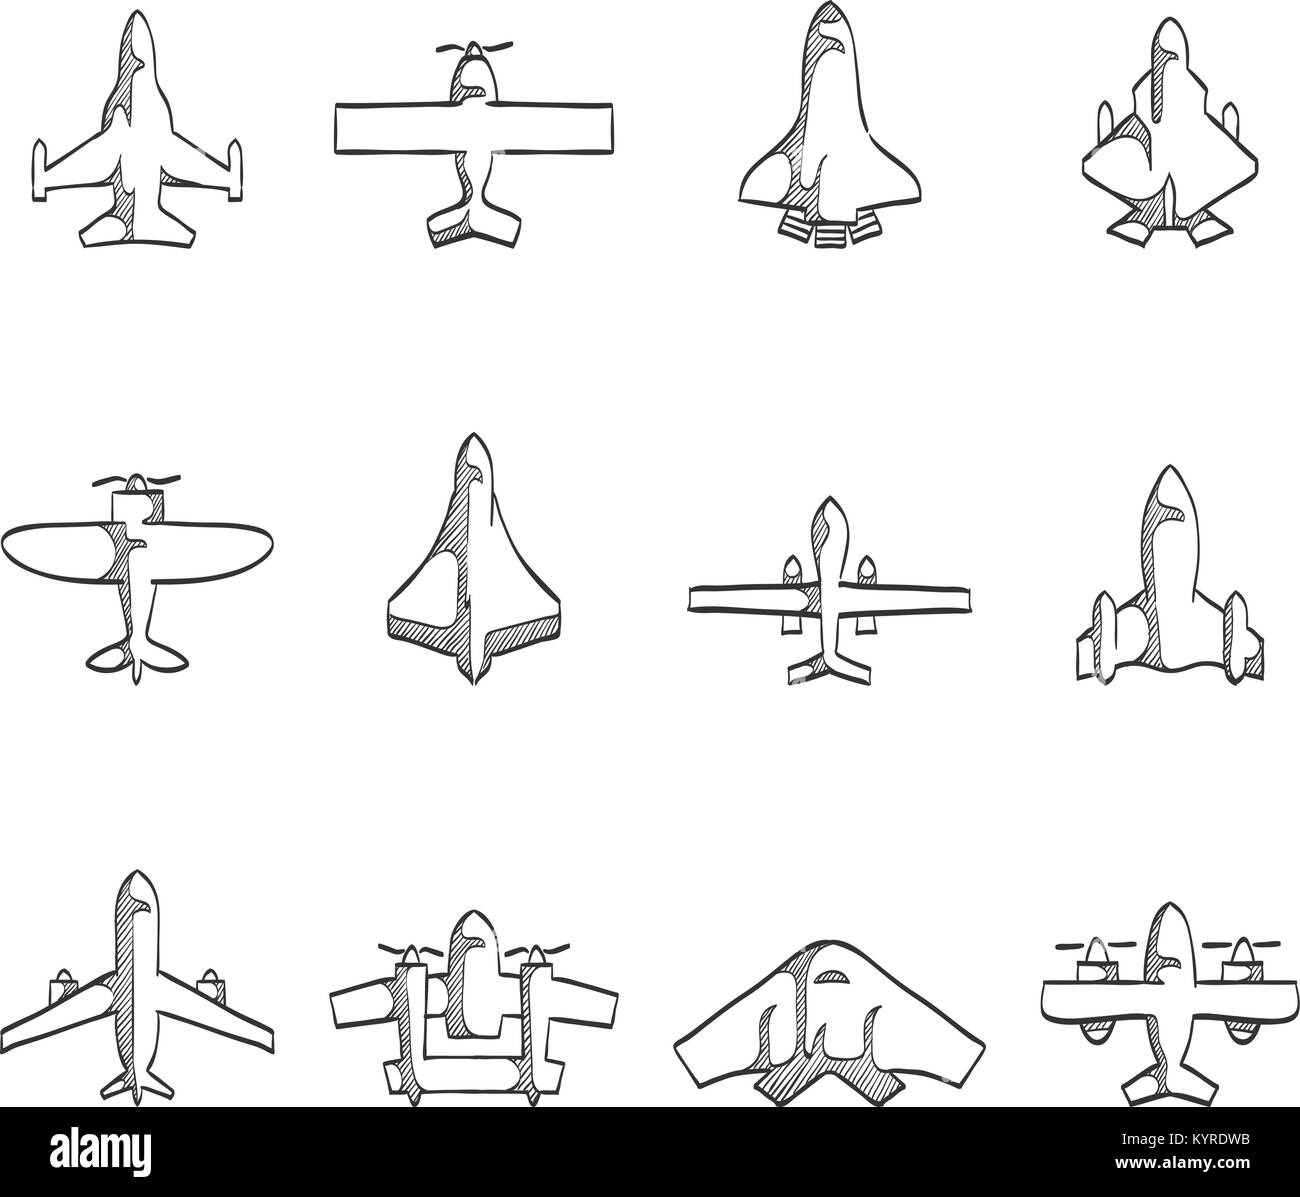 Airplane icons in sketch. - Stock Image